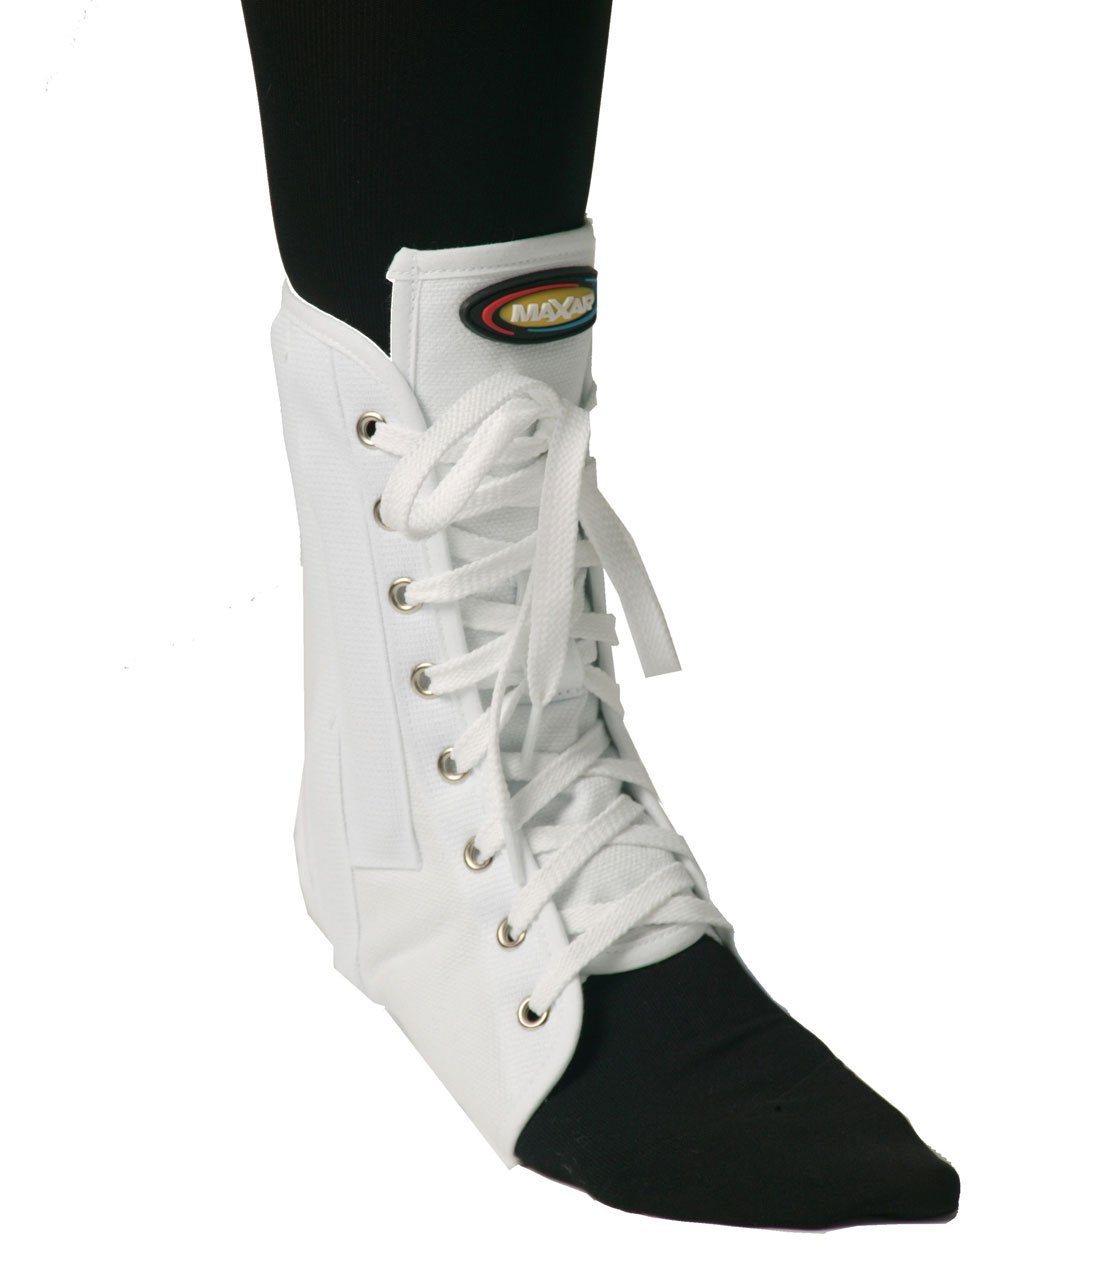 Maxar Canvas Ankle Brace (with Laces), Small, White